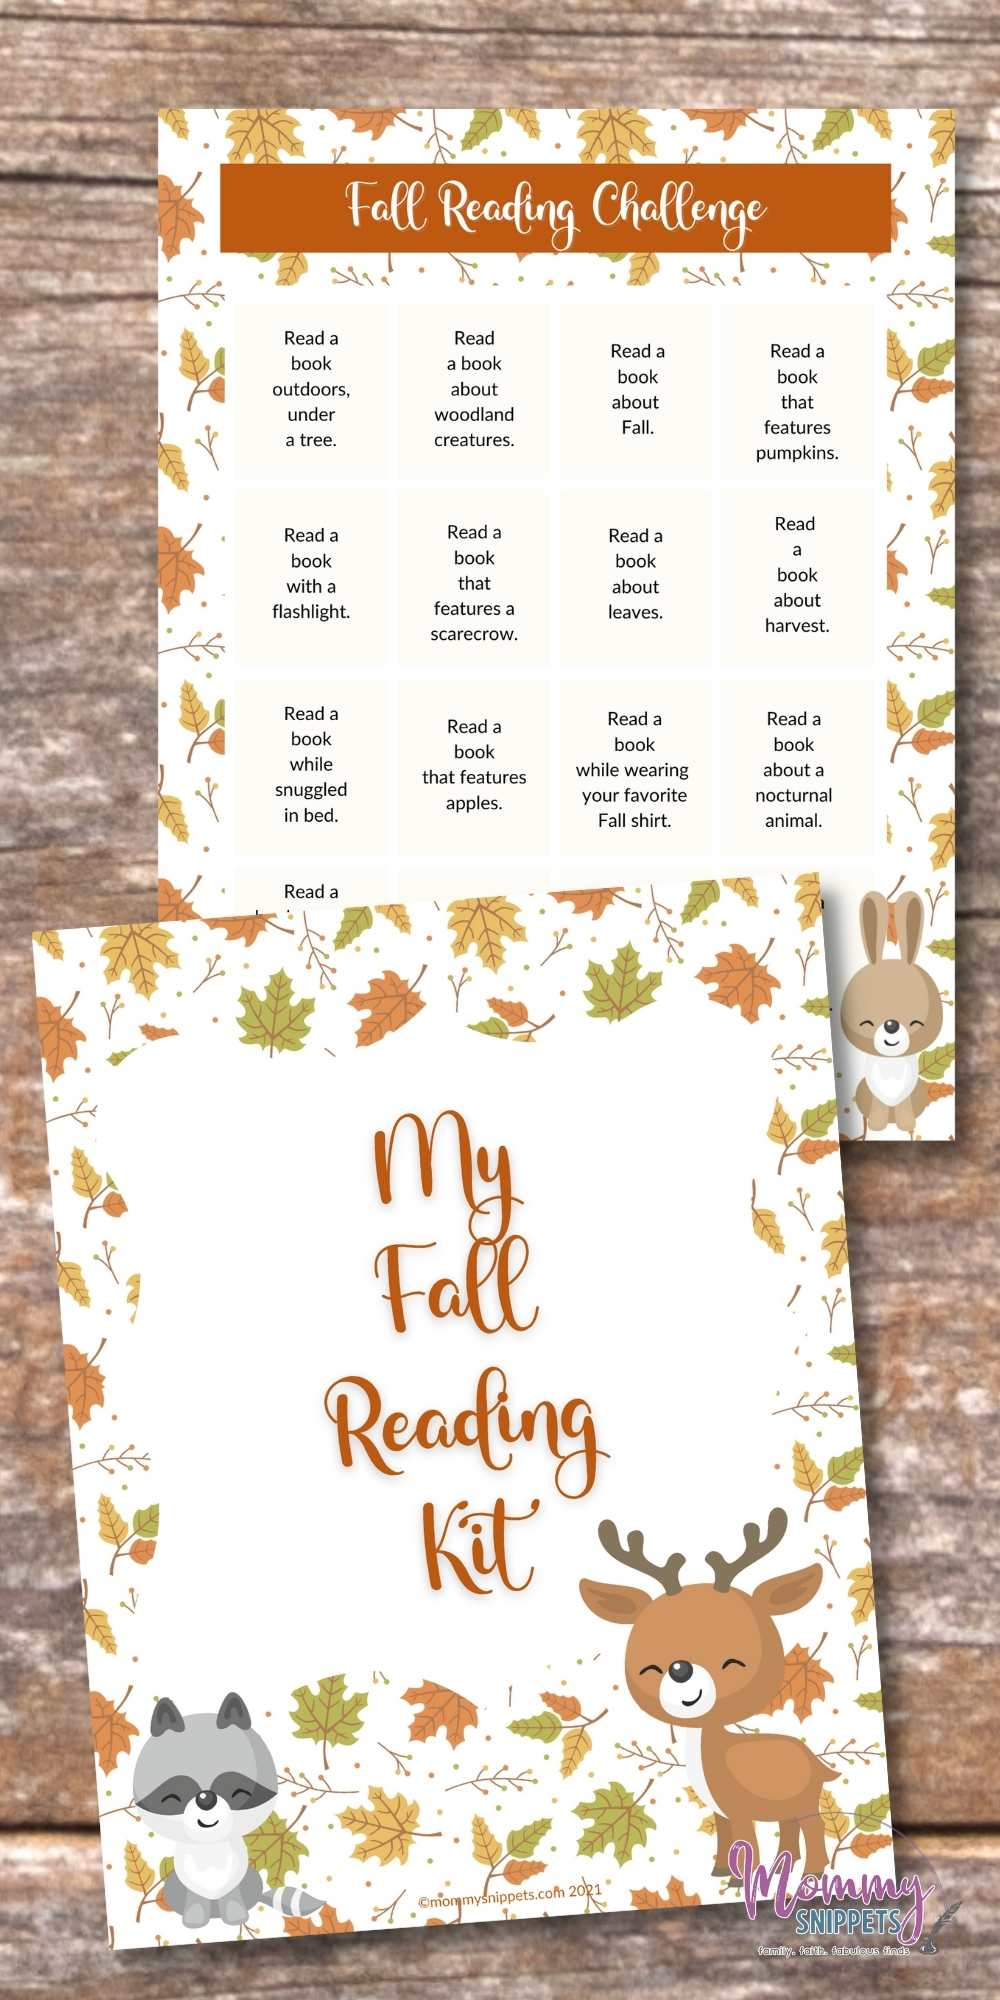 Fall Reading Challenge Printable with Fall Reading Prompts for Kids